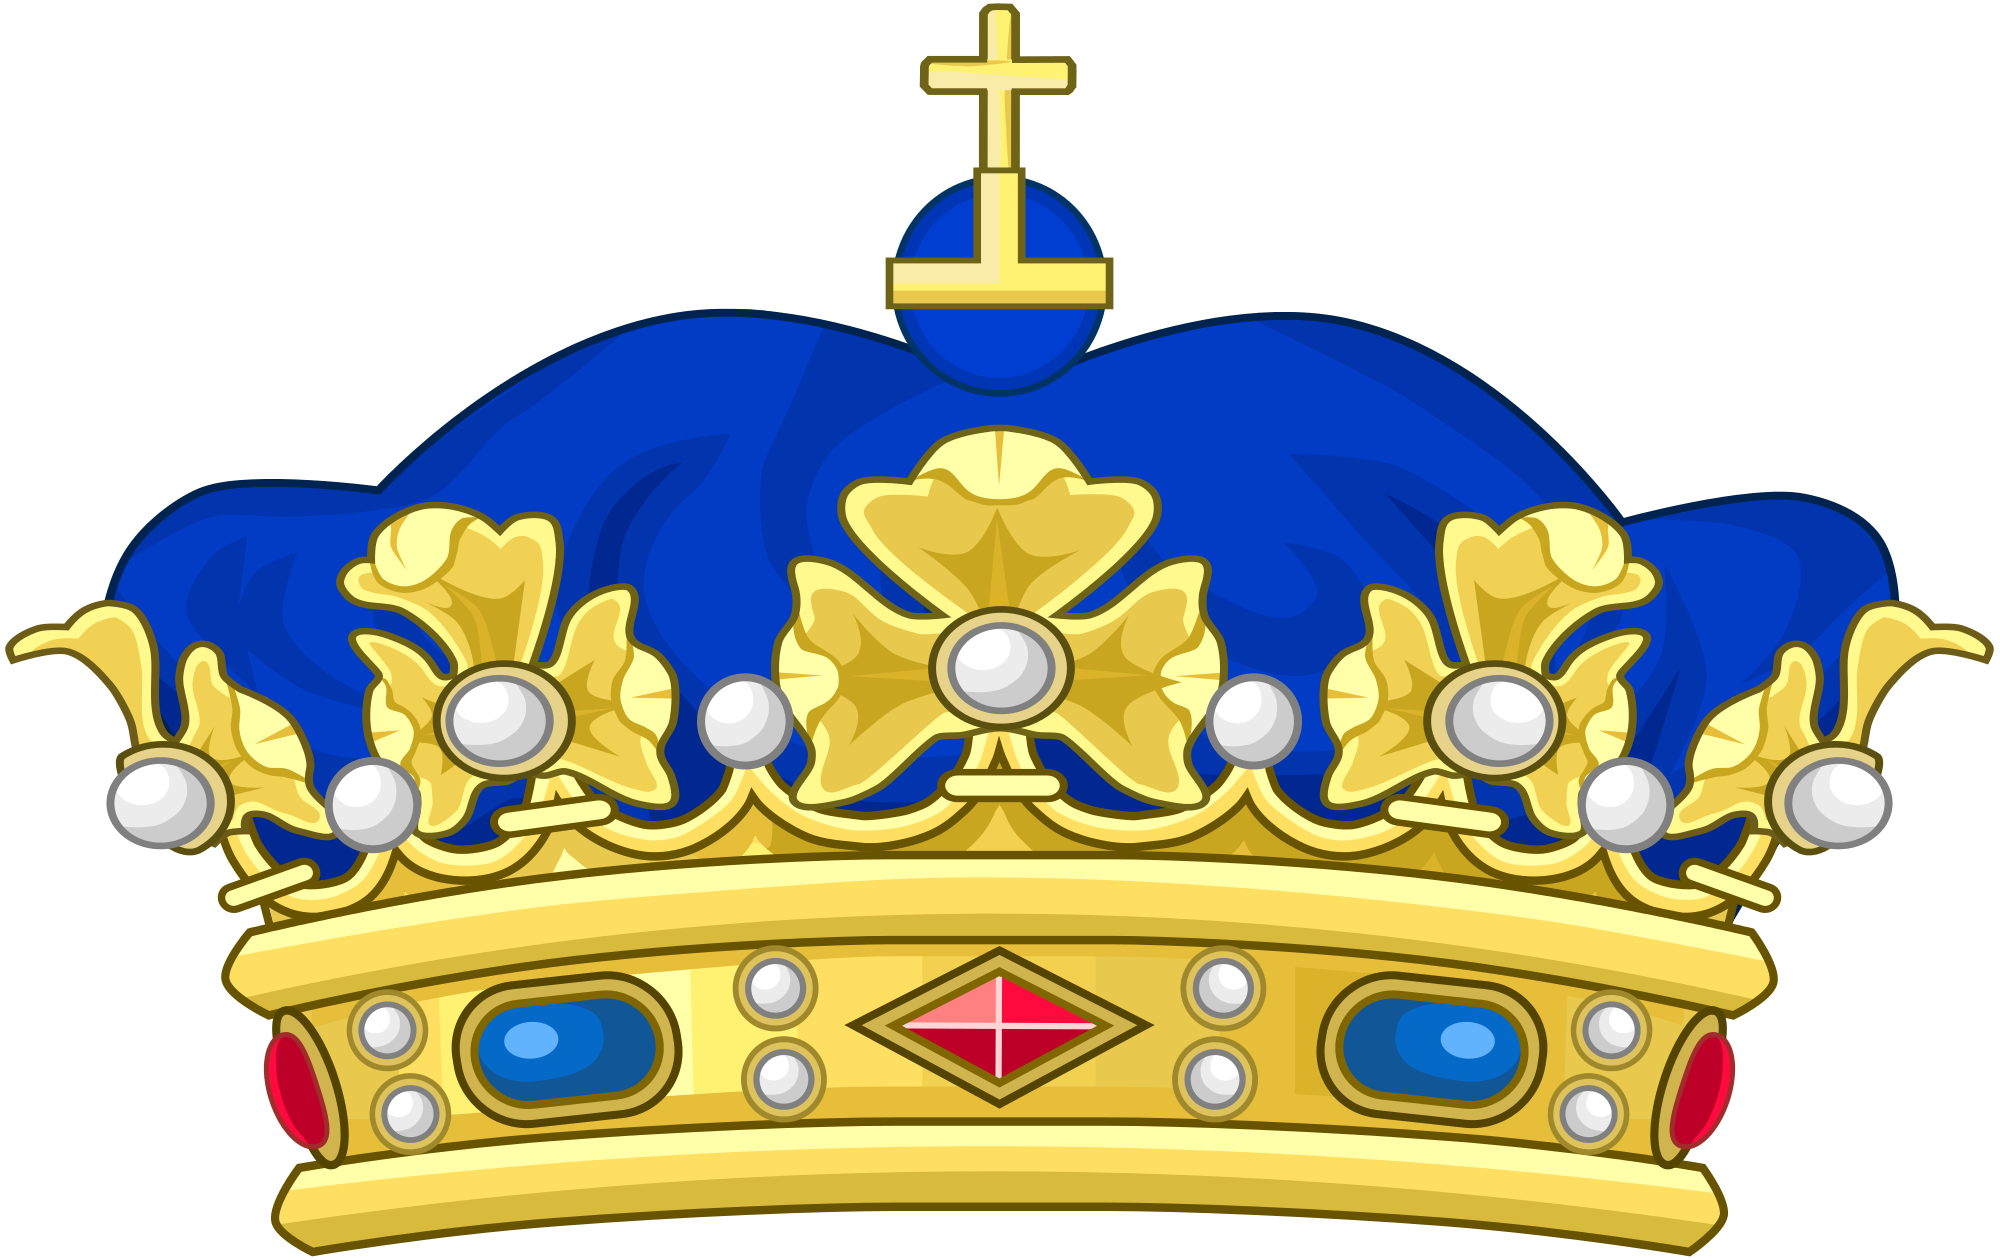 Crown crest clipart png image stock File:Crown of a Napoleonic Prince Souverain.svg - Wikimedia Commons image stock